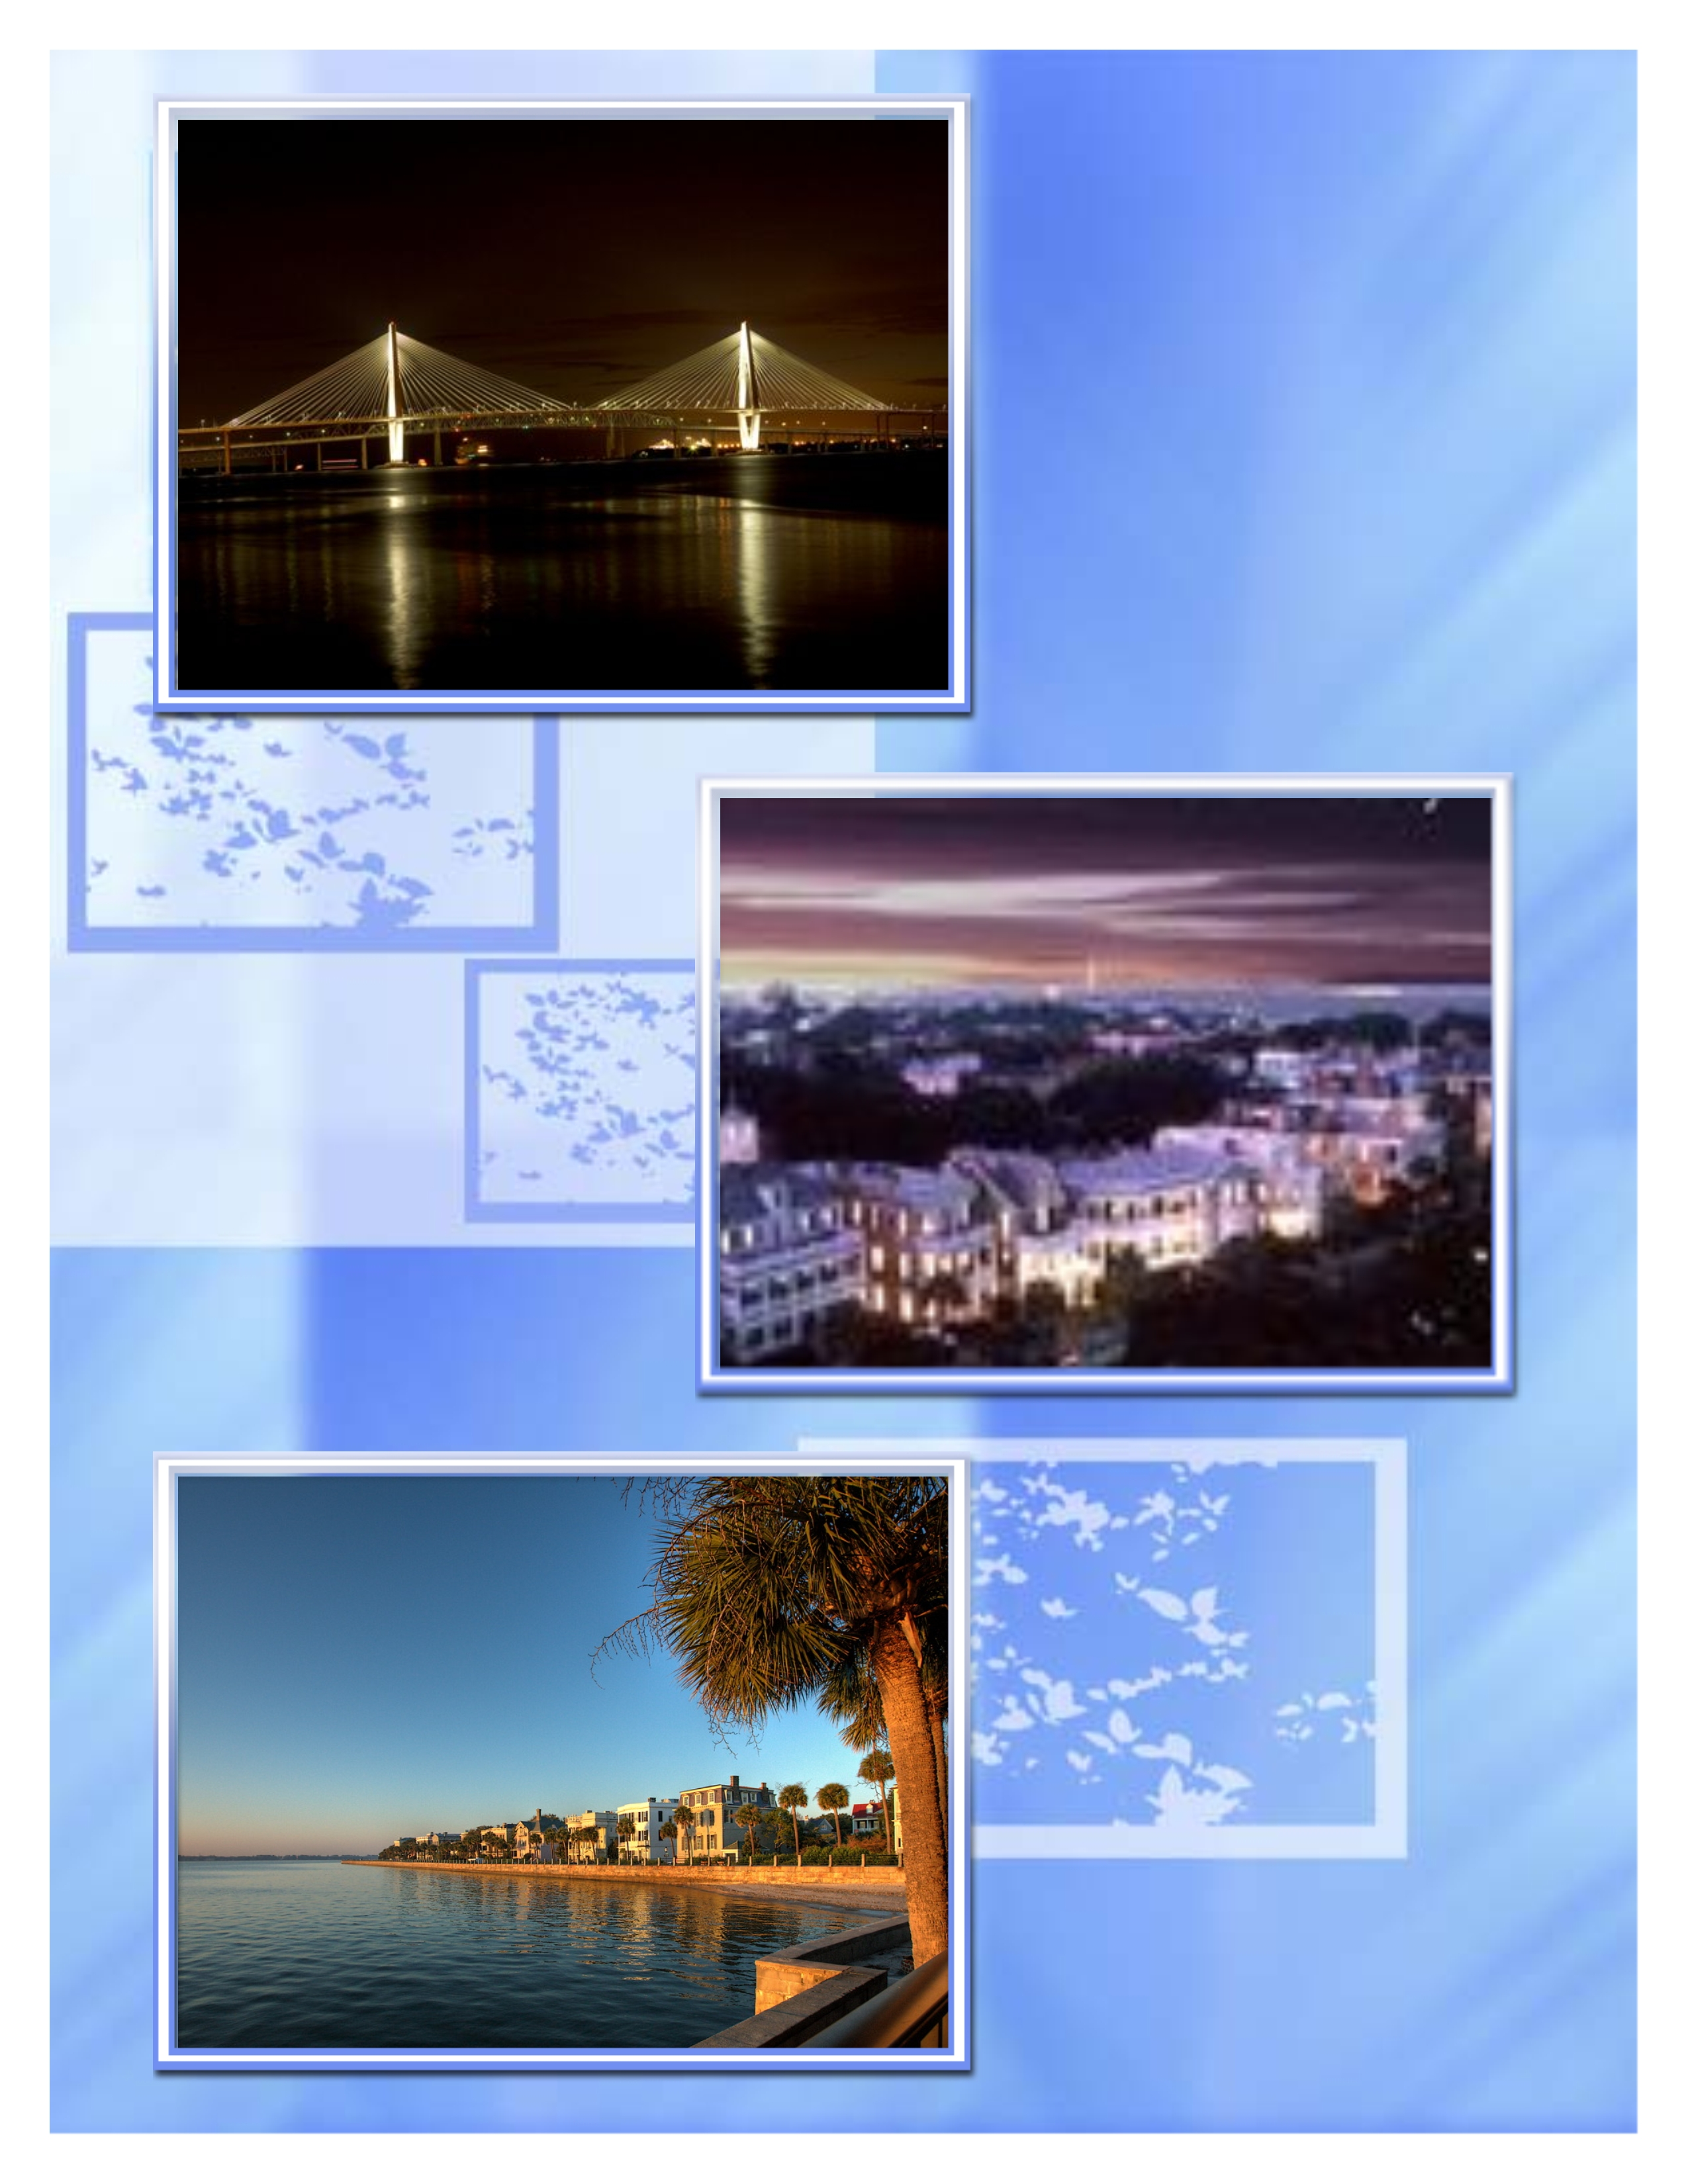 Charleston SC Internet Marketing Company Helping Small Businesses